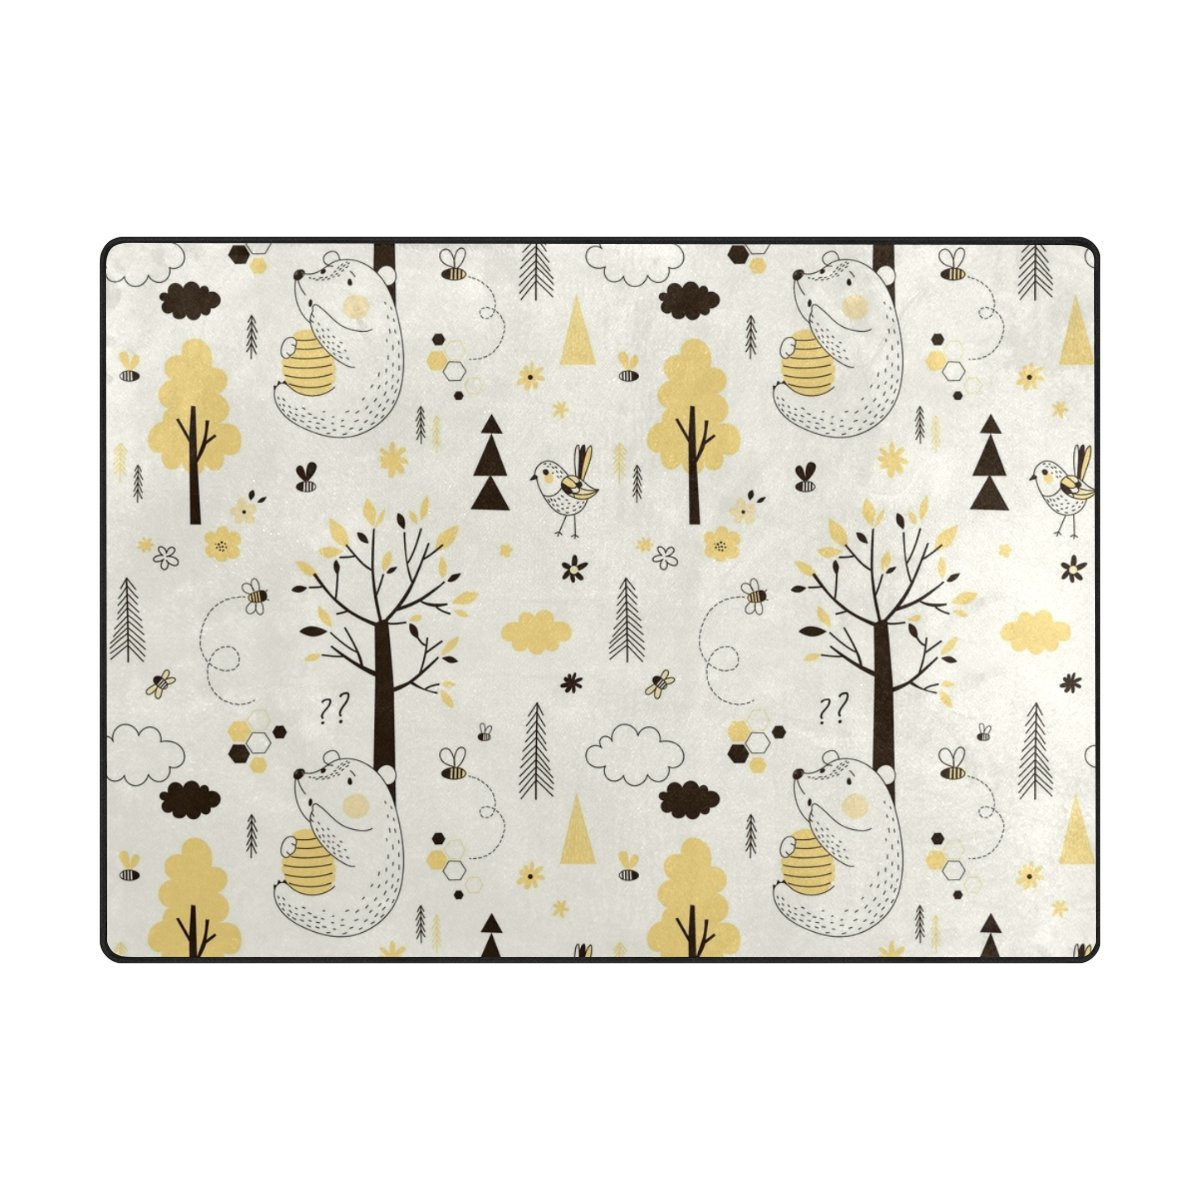 Vantaso Soft Foam Area Rugs Cute Forest Animal Bird Bear Yellow Beige Non Slip Play Mats for Kids Boys Girls Playing Room Living Room 63x48 inch